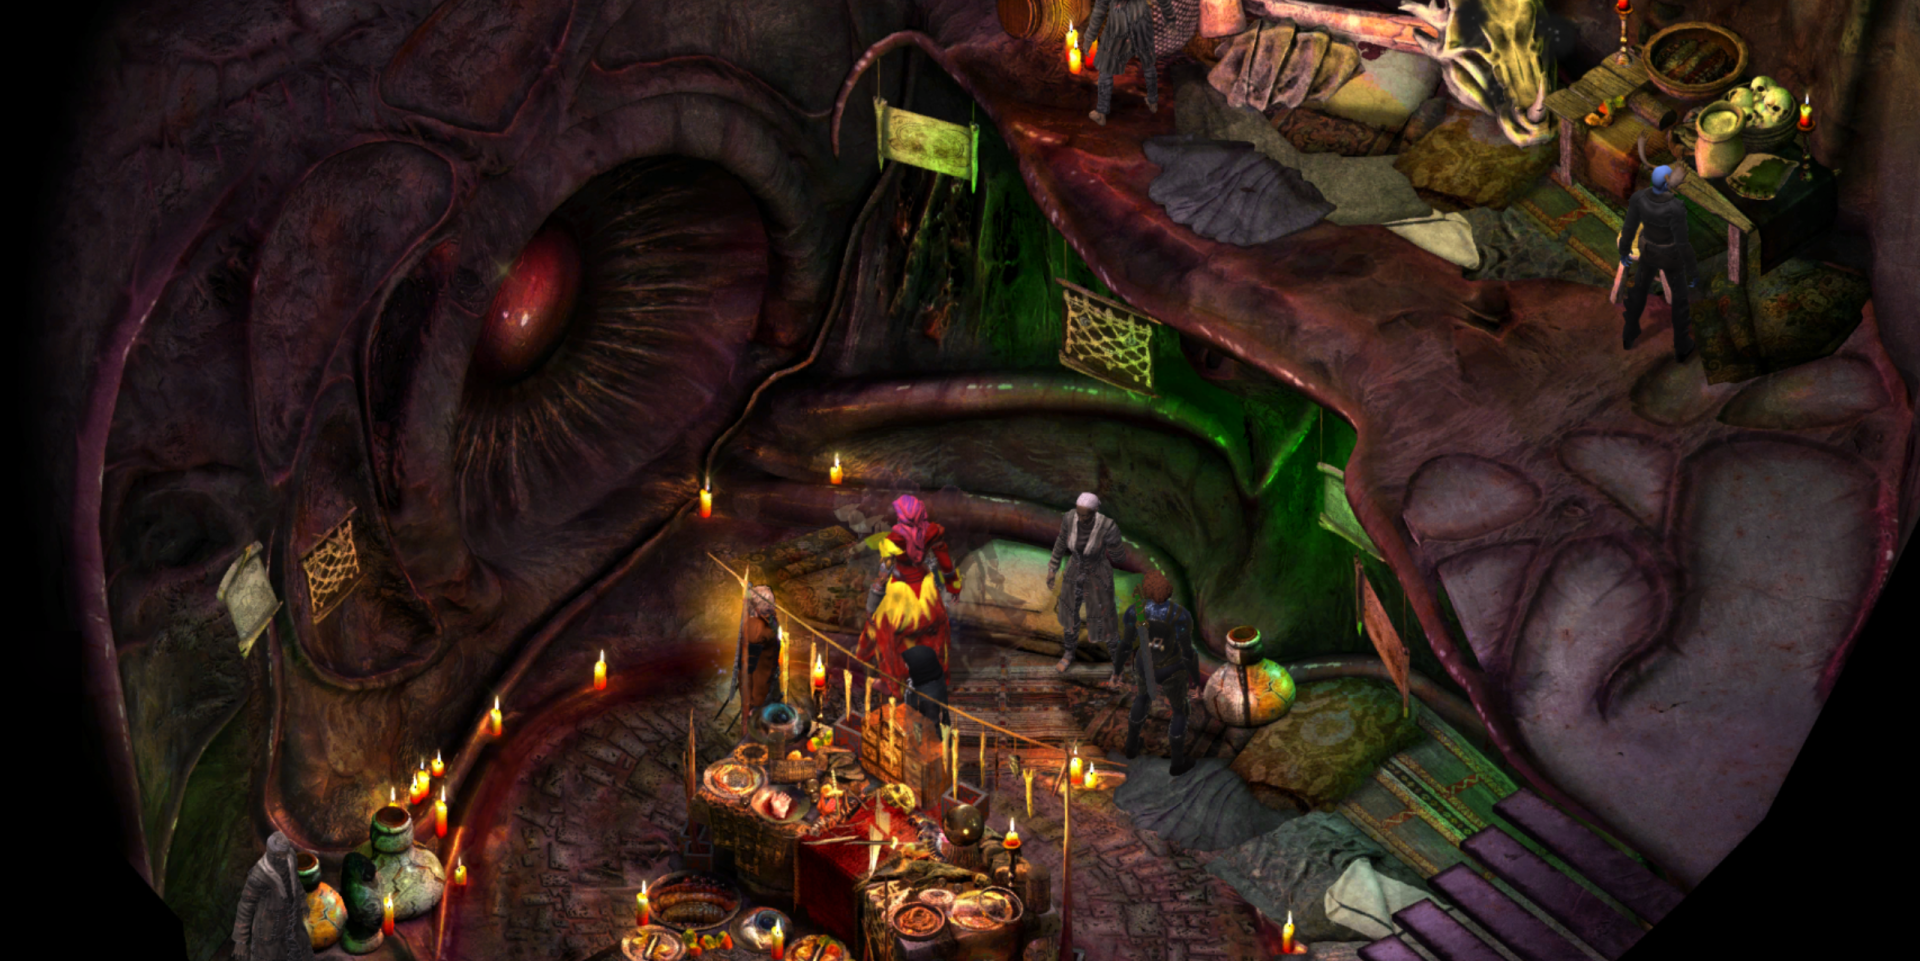 'Torment: Tides of Numenera' Has More Words Than the Bible